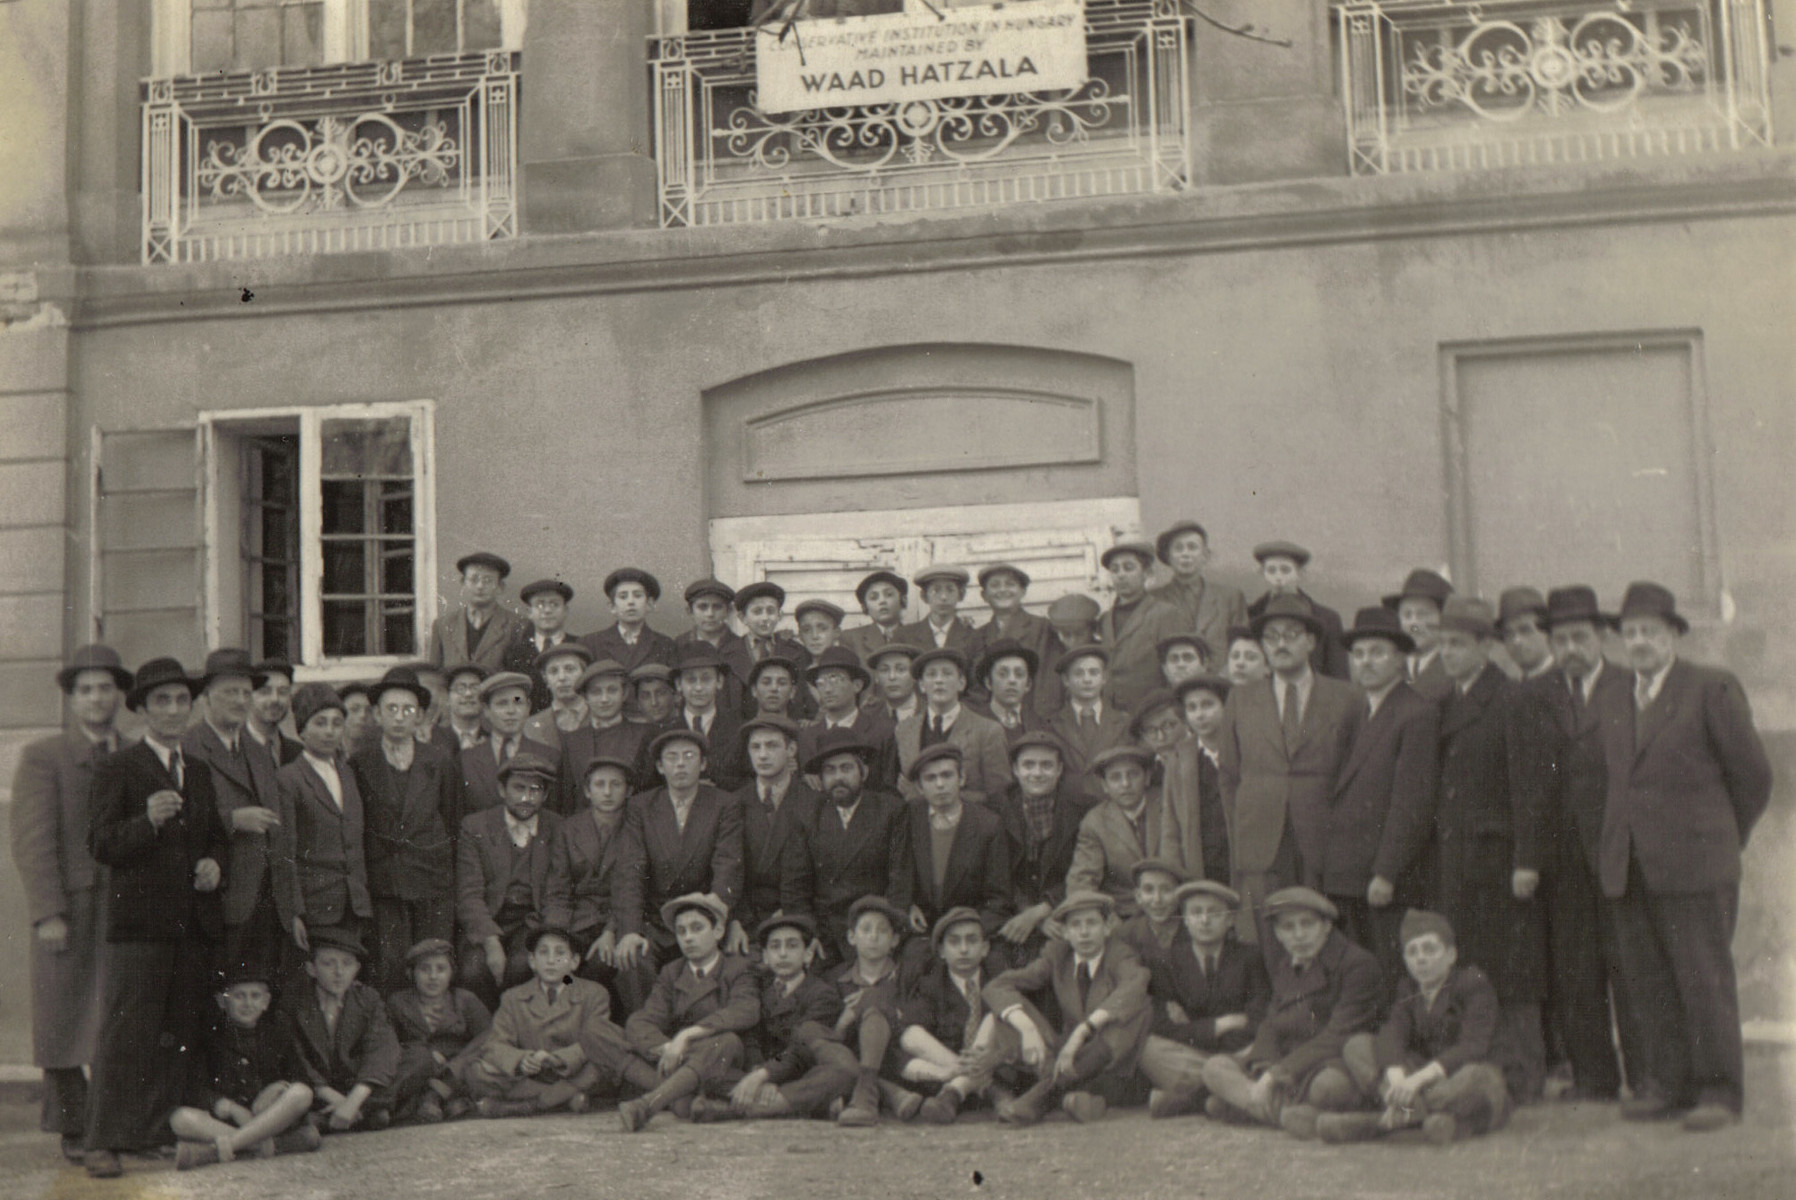 Group portrait of Orthodox men and boys outside a building sponsored by the Vaad Hatzala in Hungary.